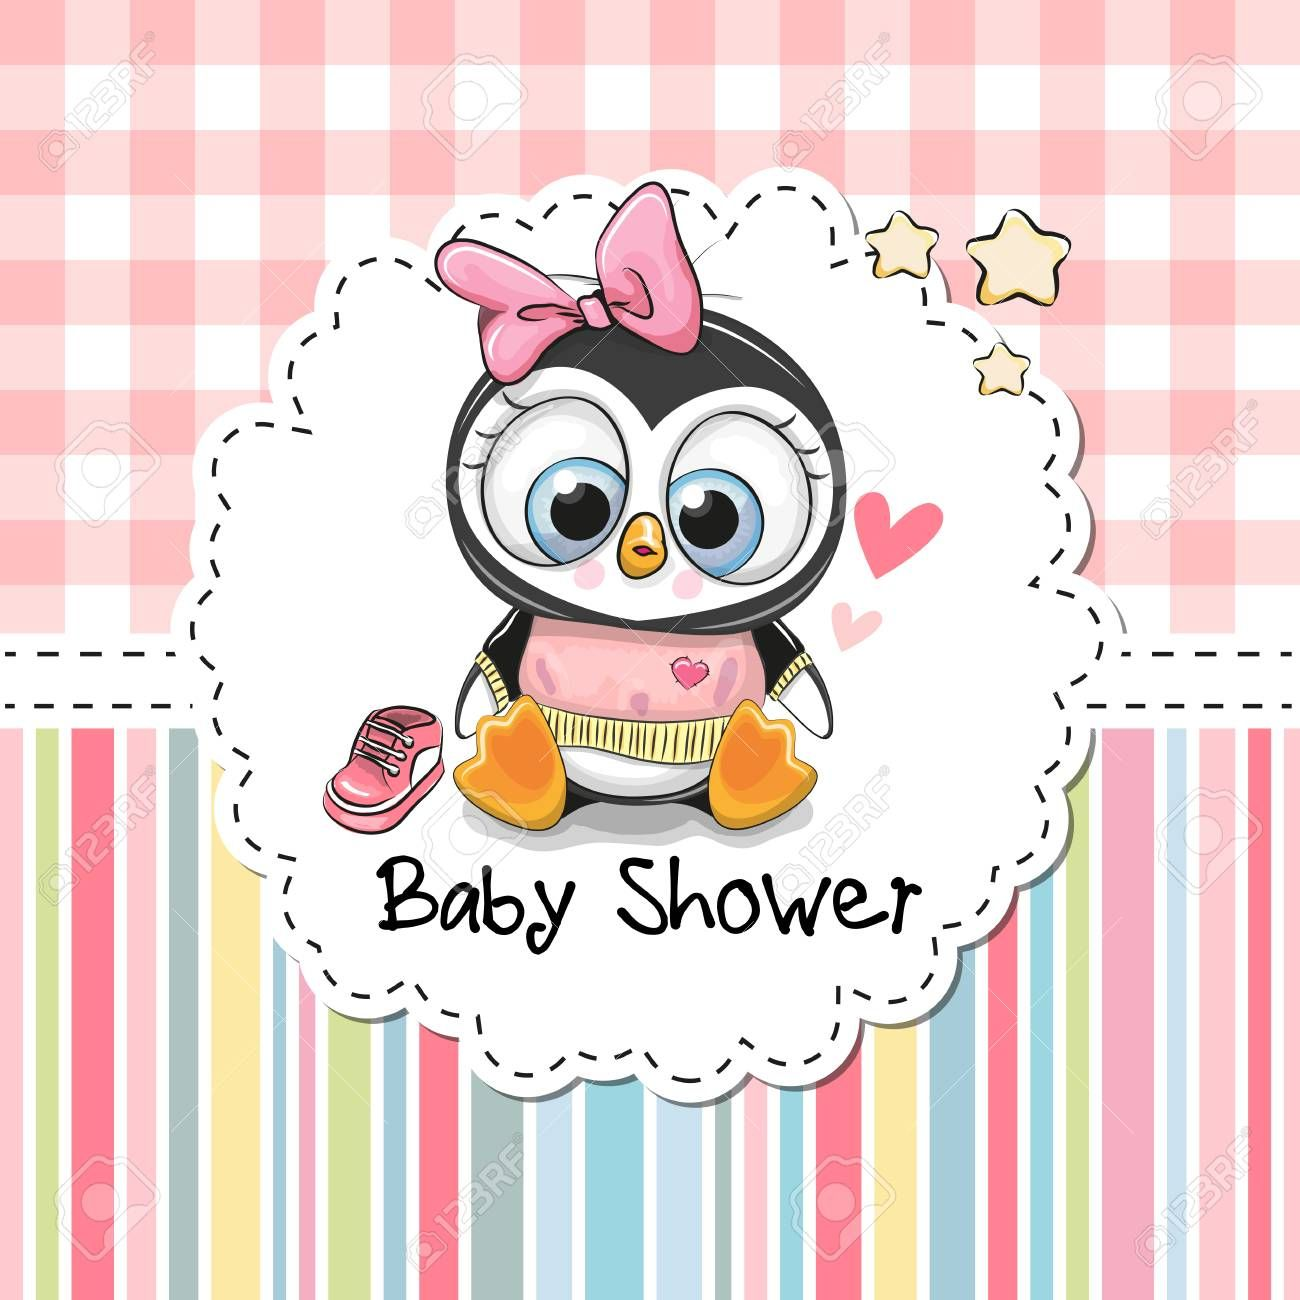 Stock Vector Baby shower greetings, Baby shower greeting